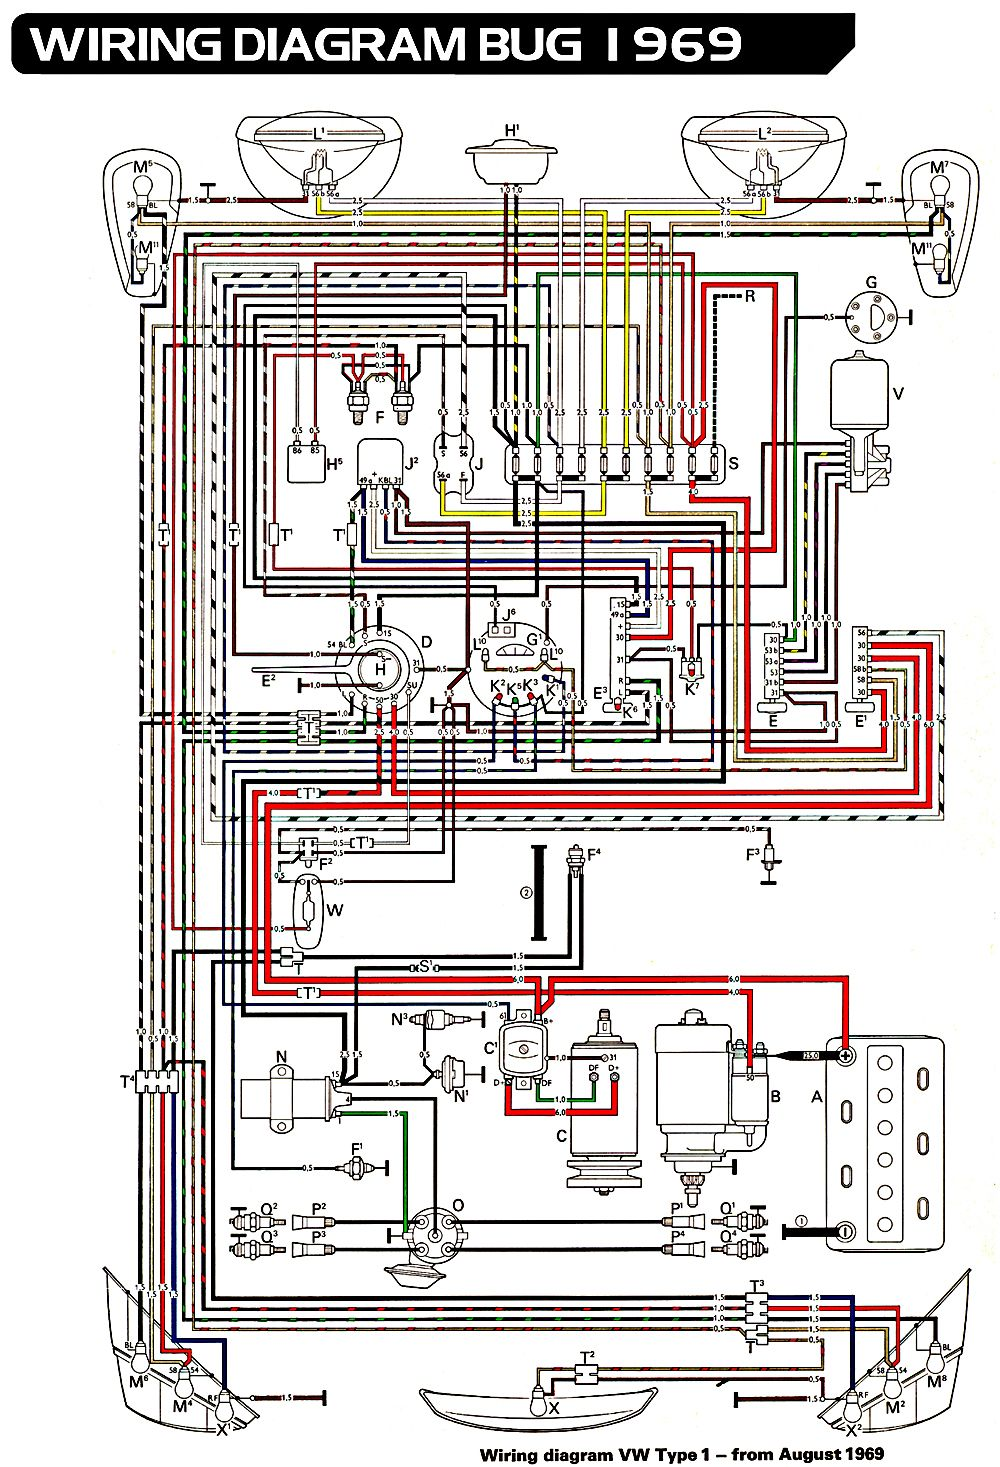 6d75c15875479254f26a32a8499d9044 volkswagen beetle wiring diagram 1966 vw beetle wiring 1963 vw wiring diagram at alyssarenee.co